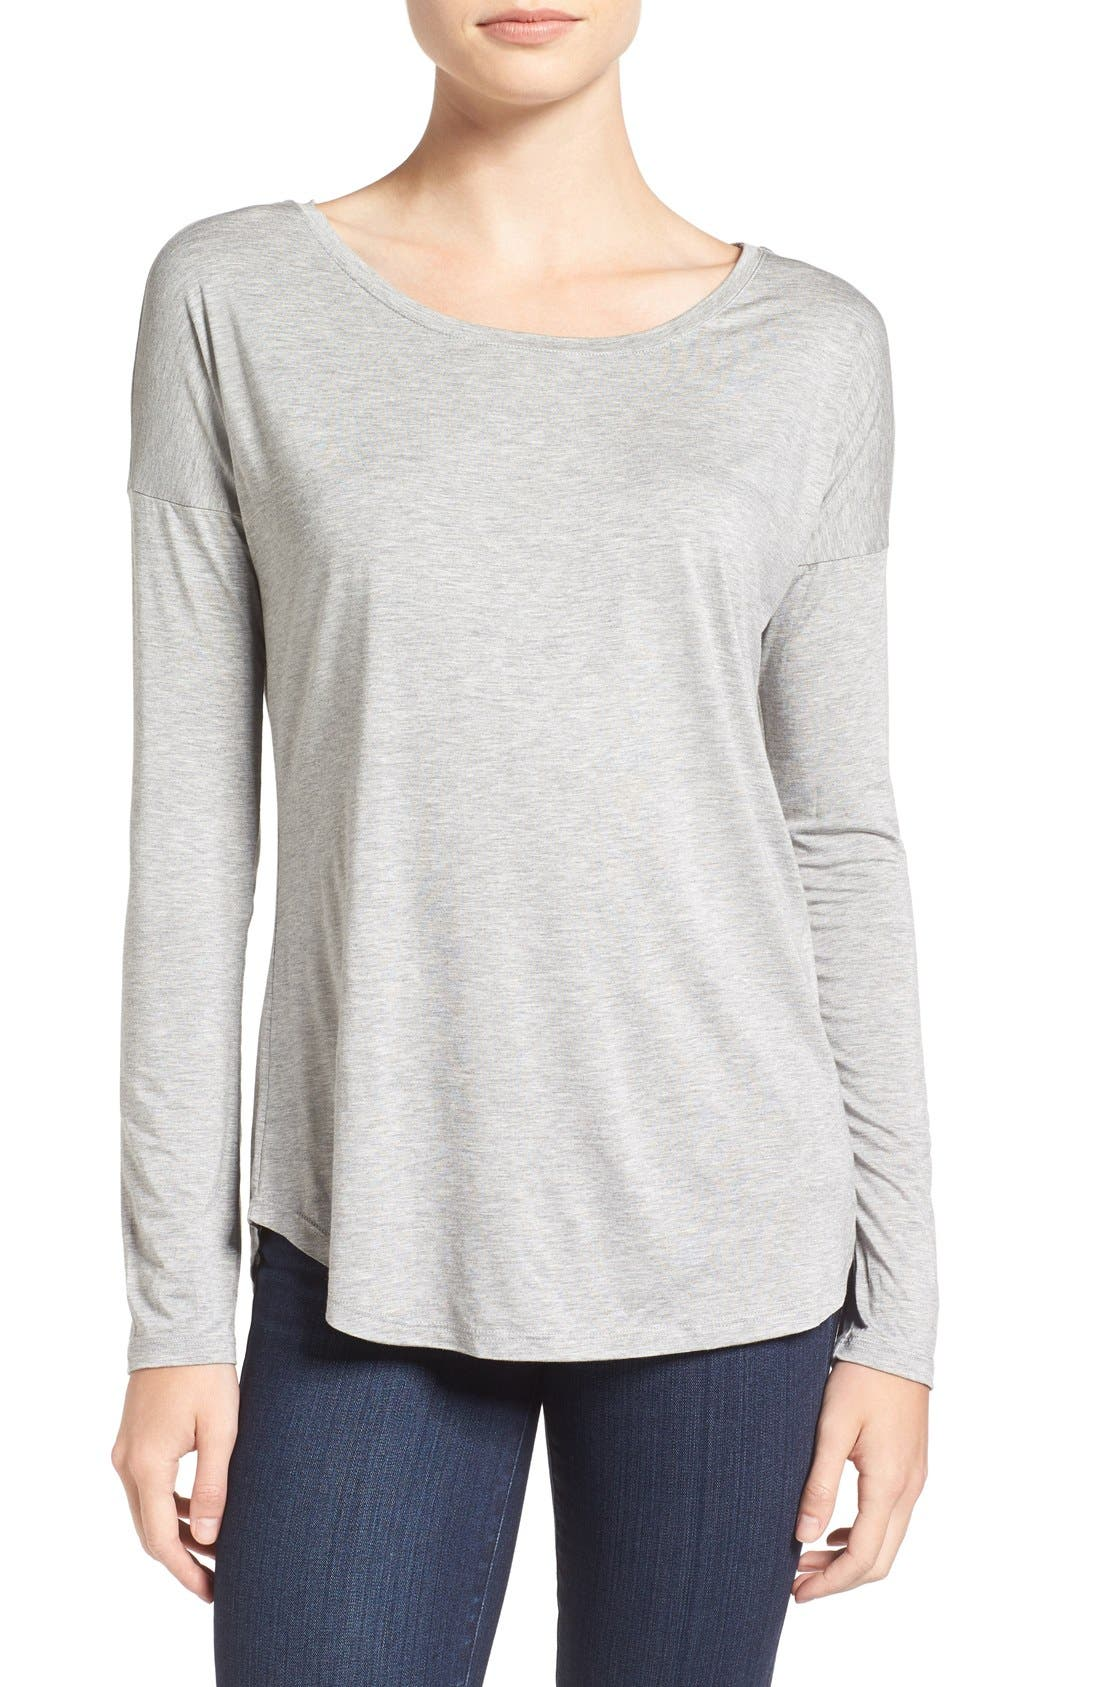 Alternate Image 1 Selected - PAIGE 'Bess' Stretch Jersey Boatneck Tee